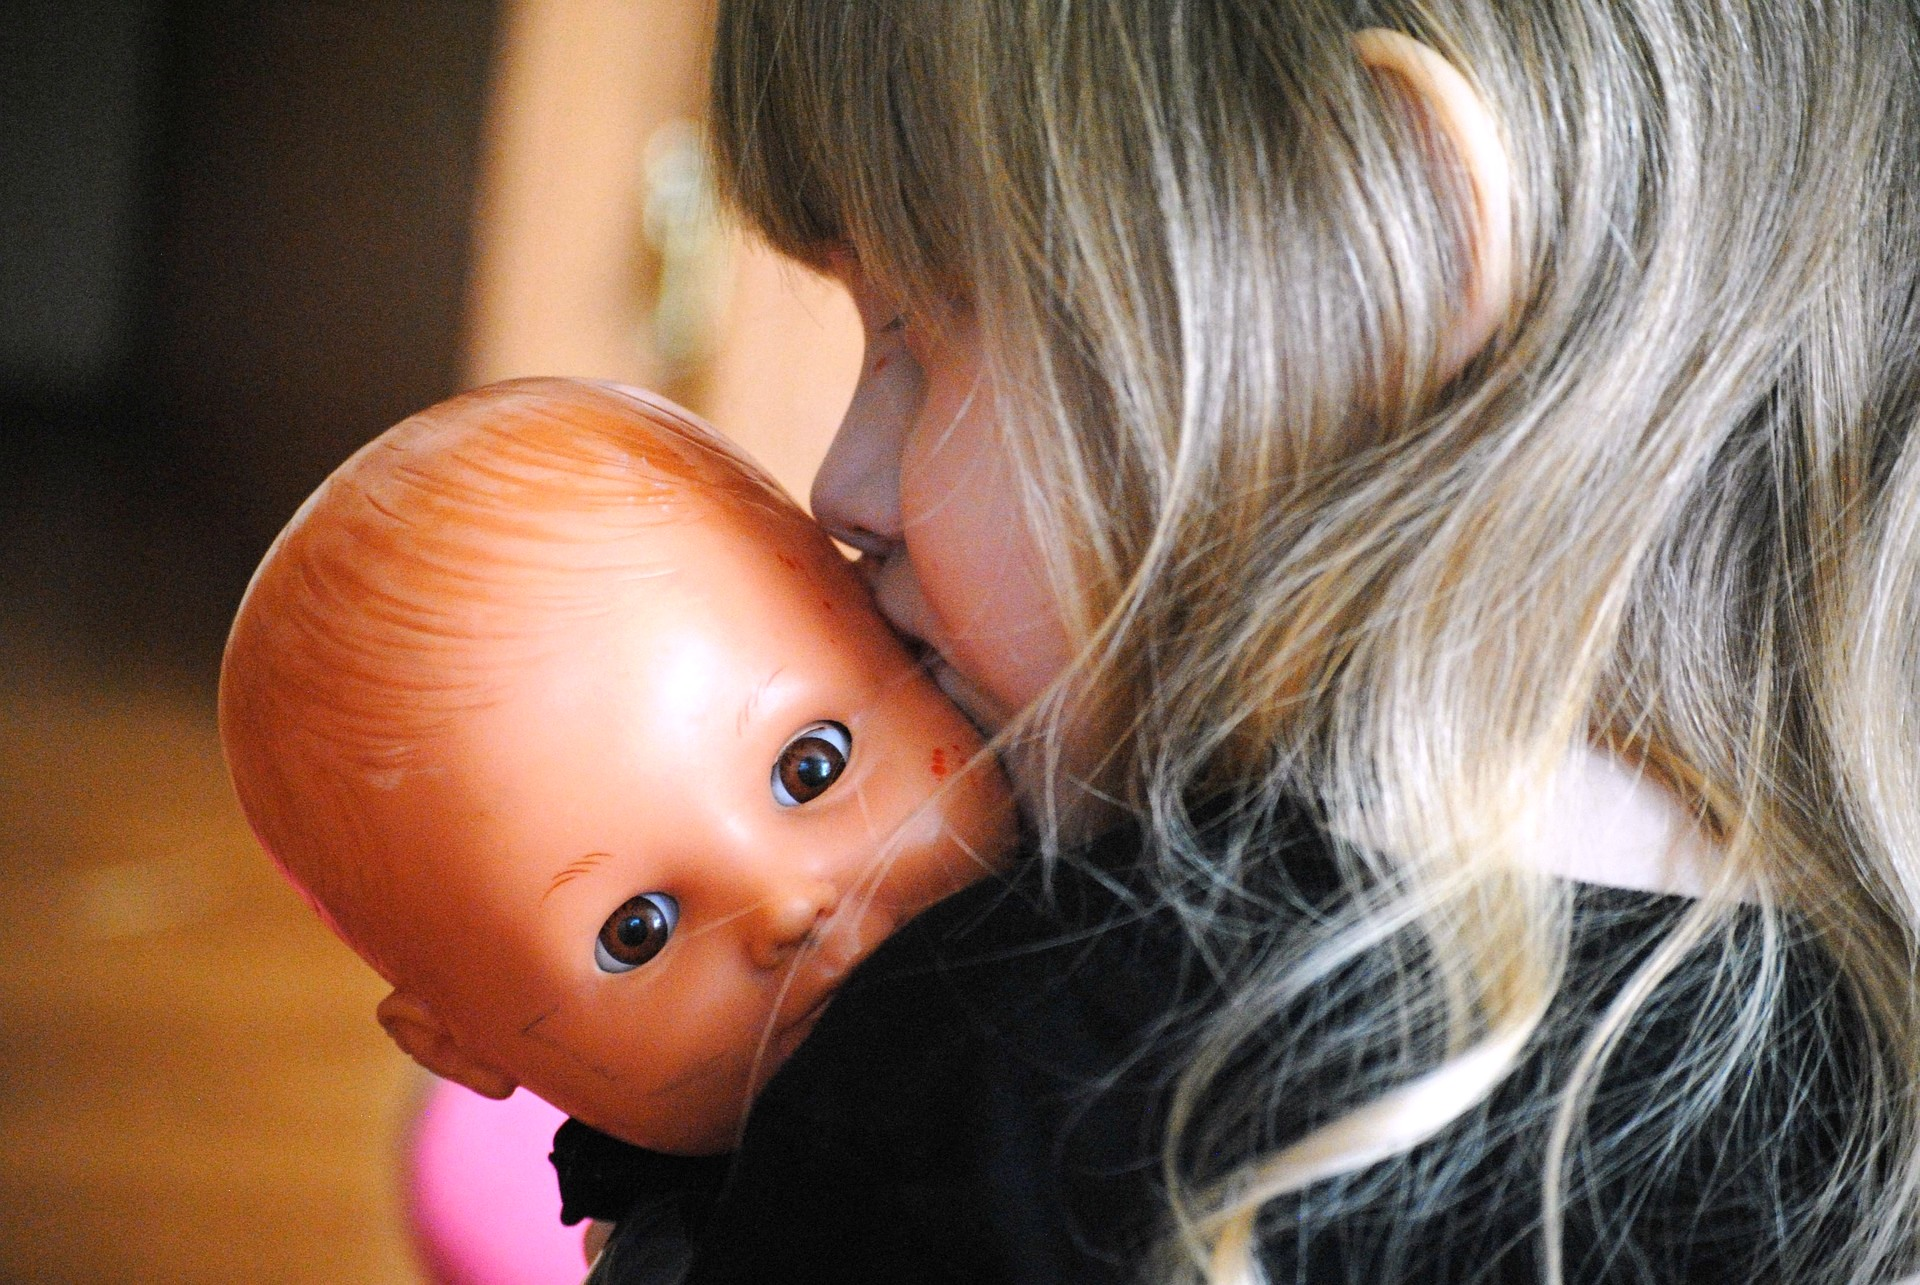 Child comforting baby doll